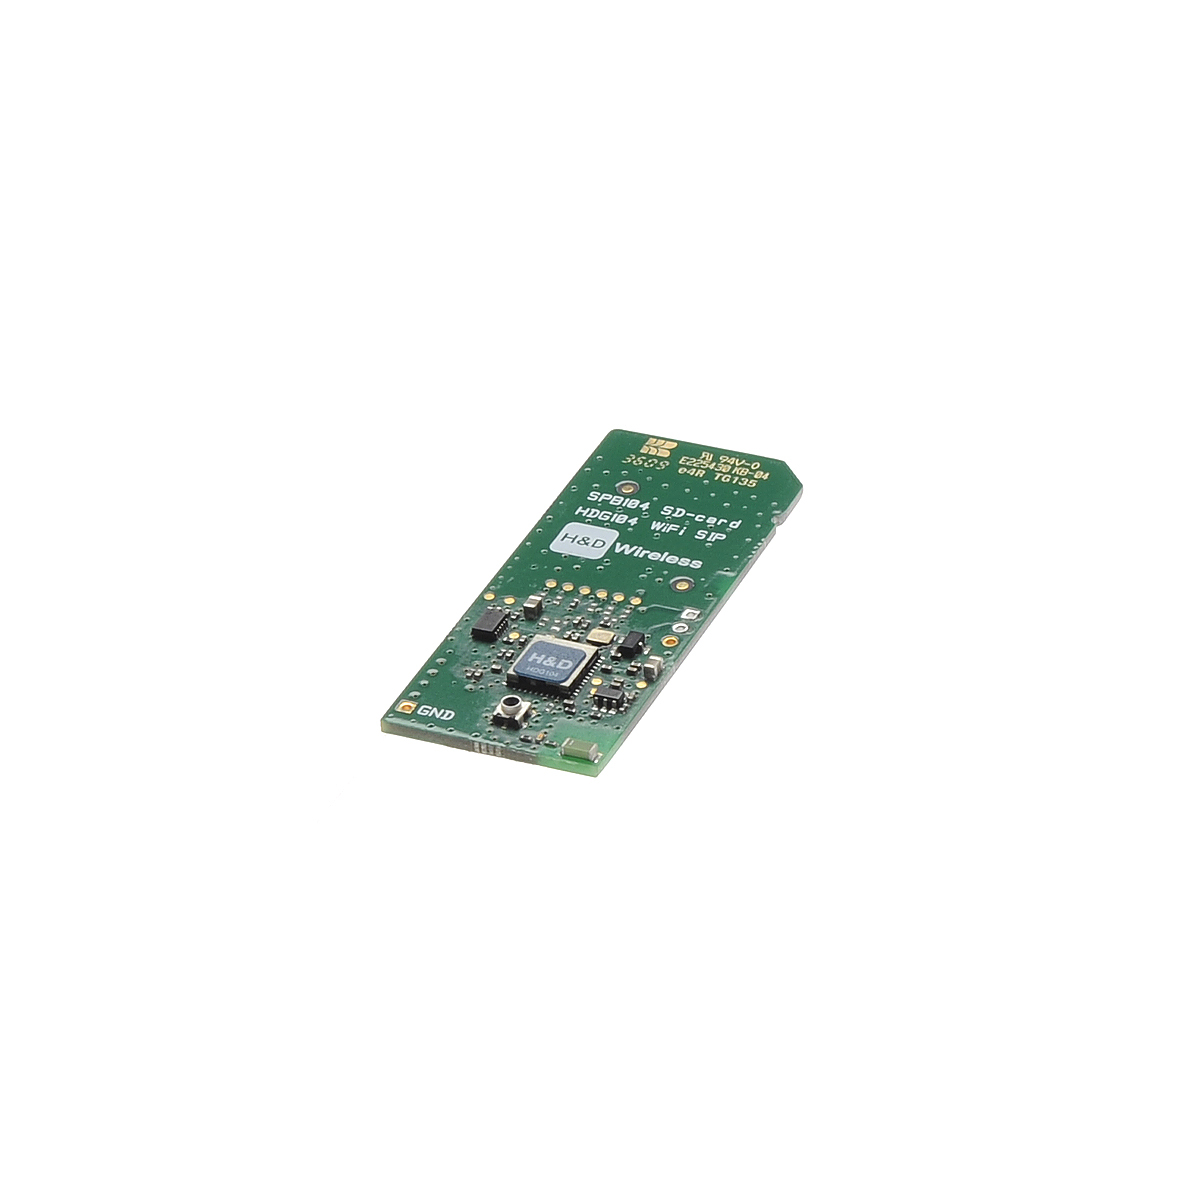 Development Tools Evas Are Extensive Printedcircuit Board Pcb Networks That Contain